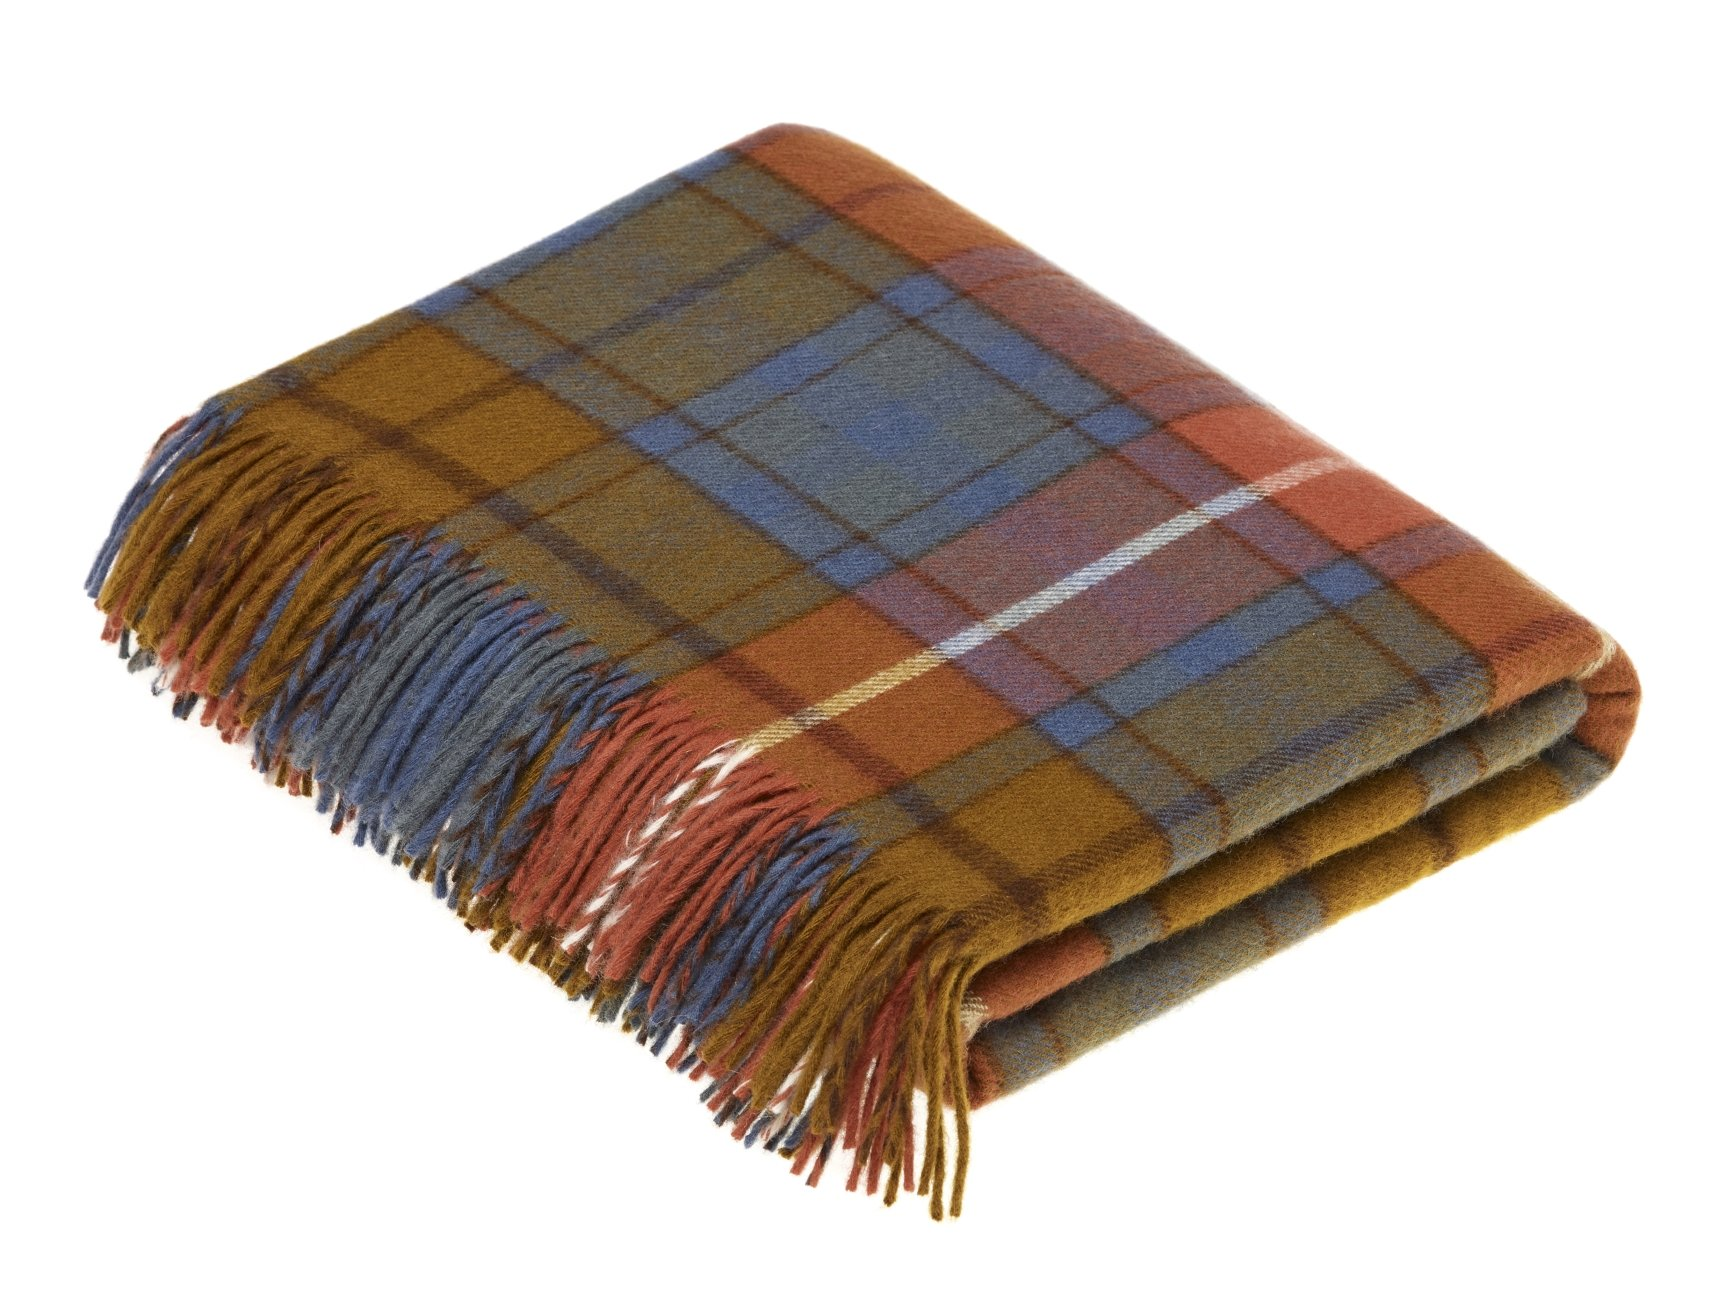 Antique Buchanan Merino Wool Tartan.